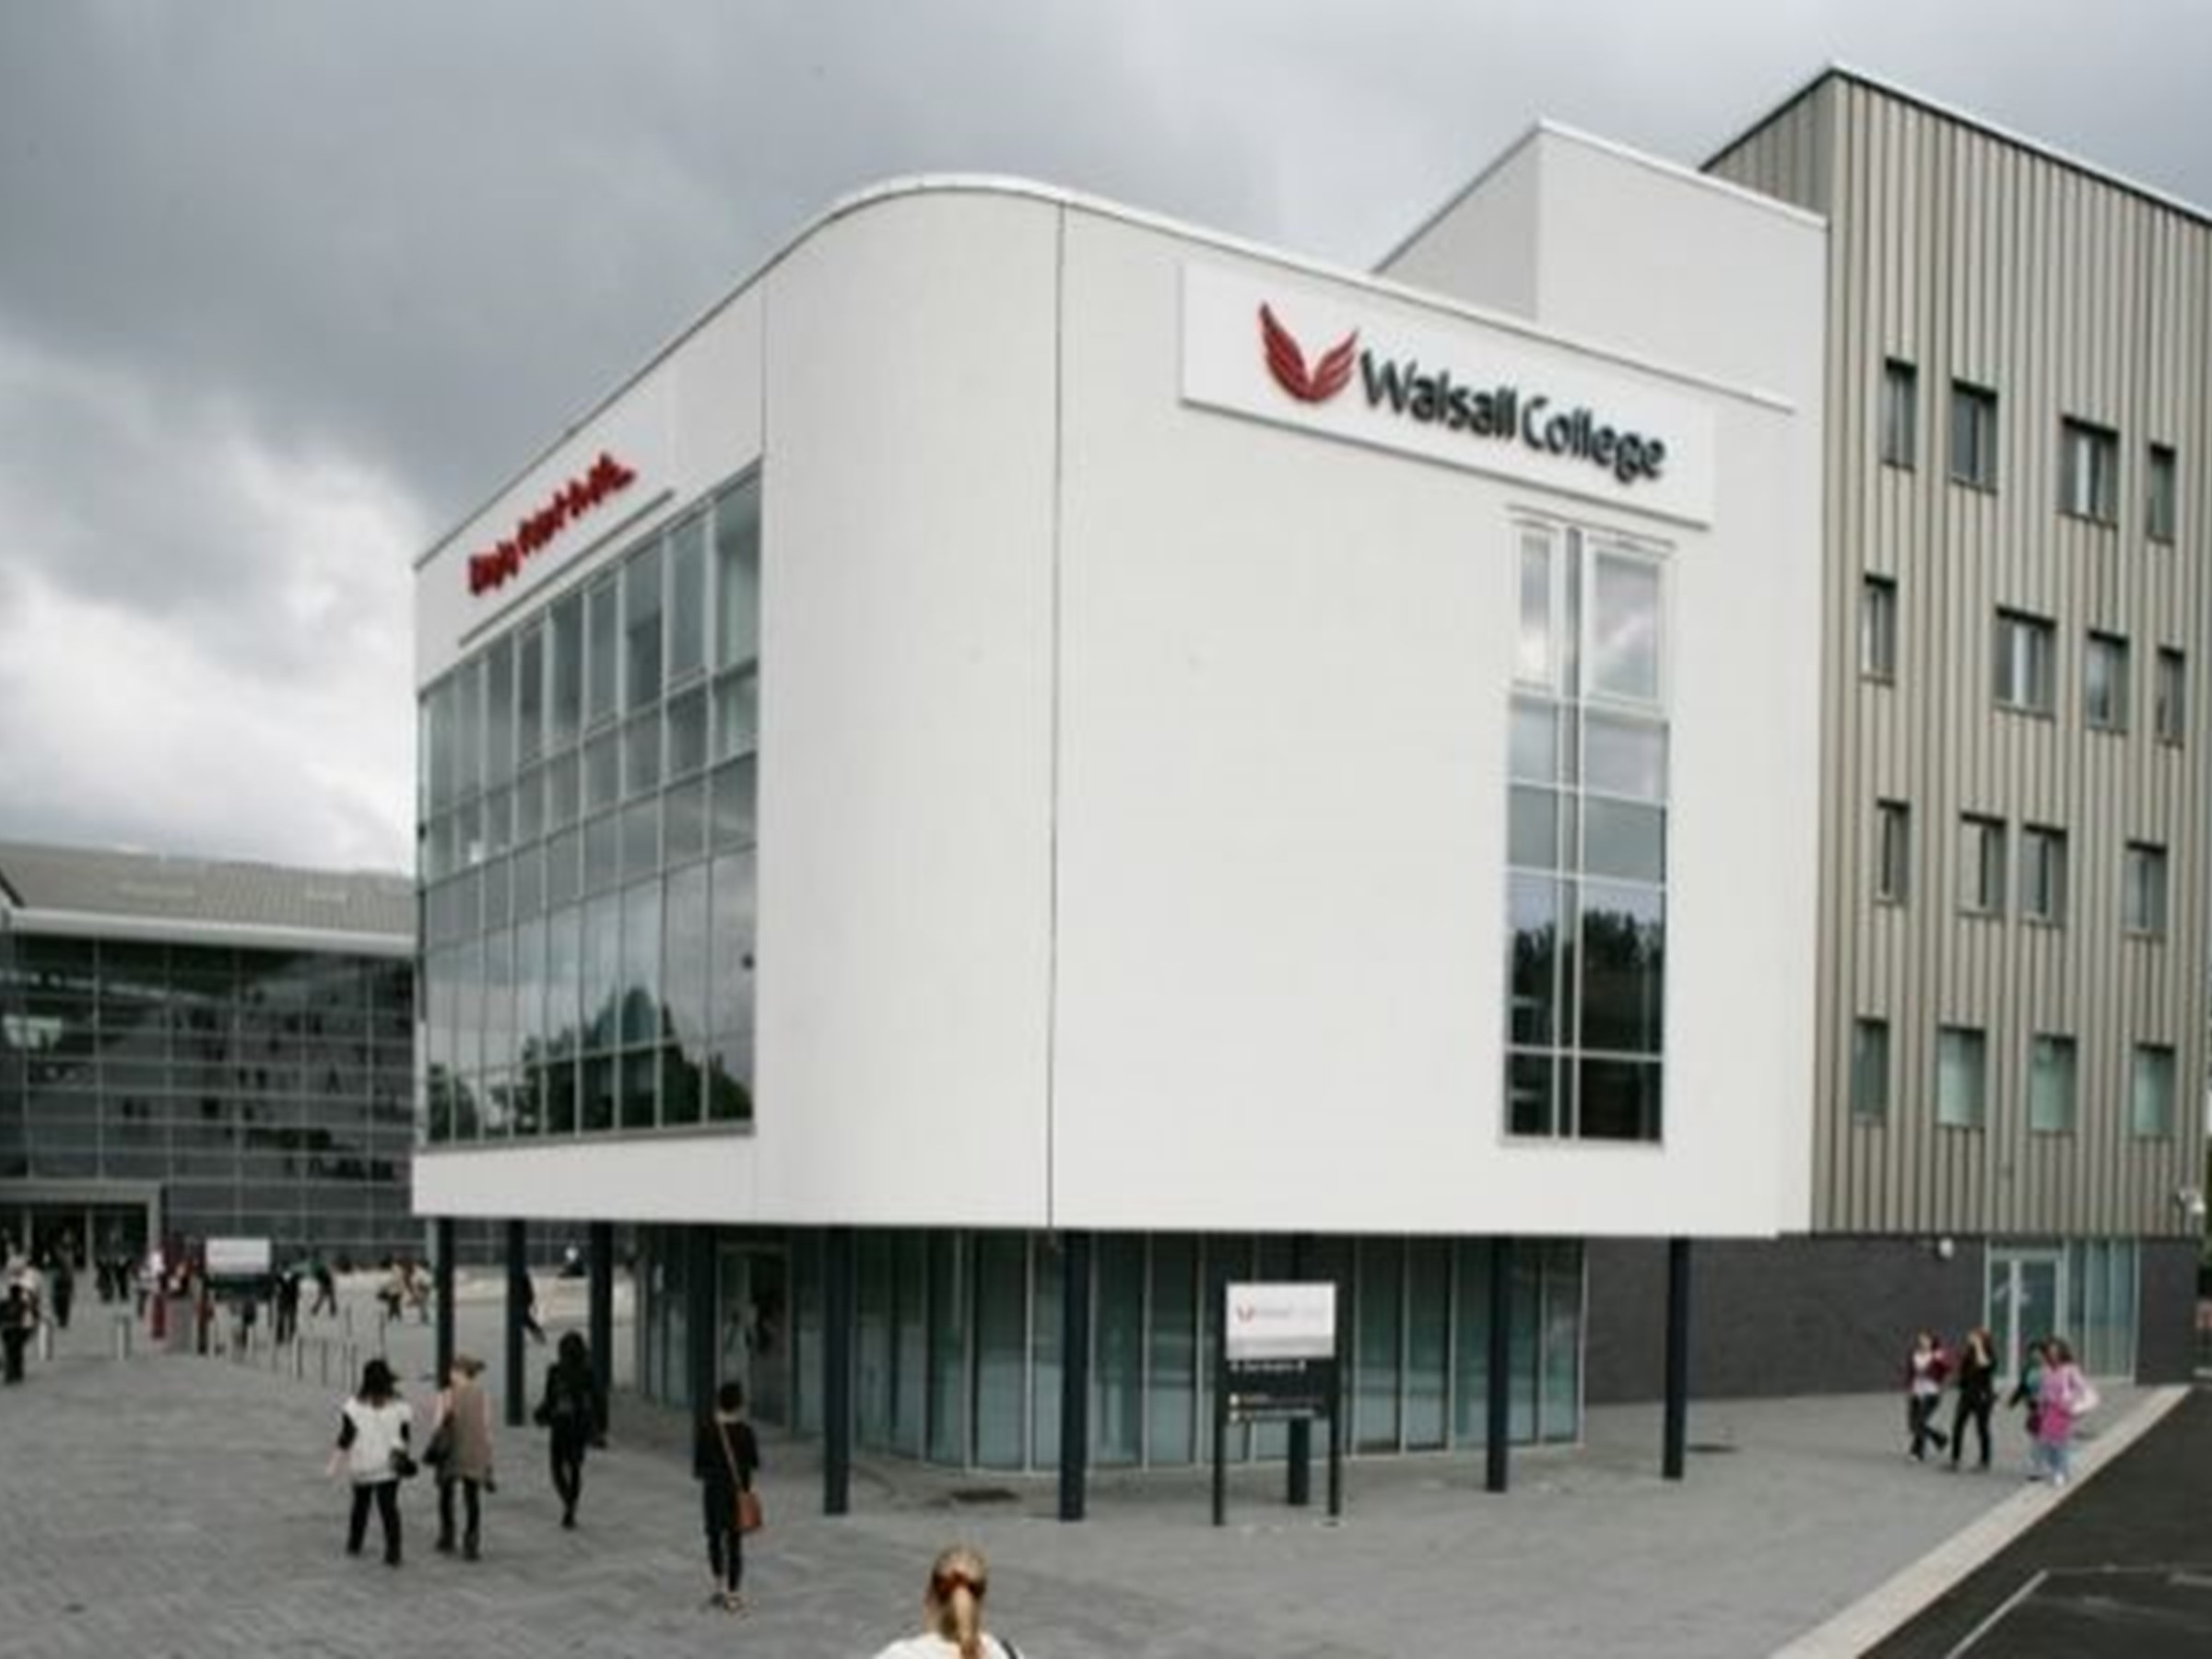 Walsall College building